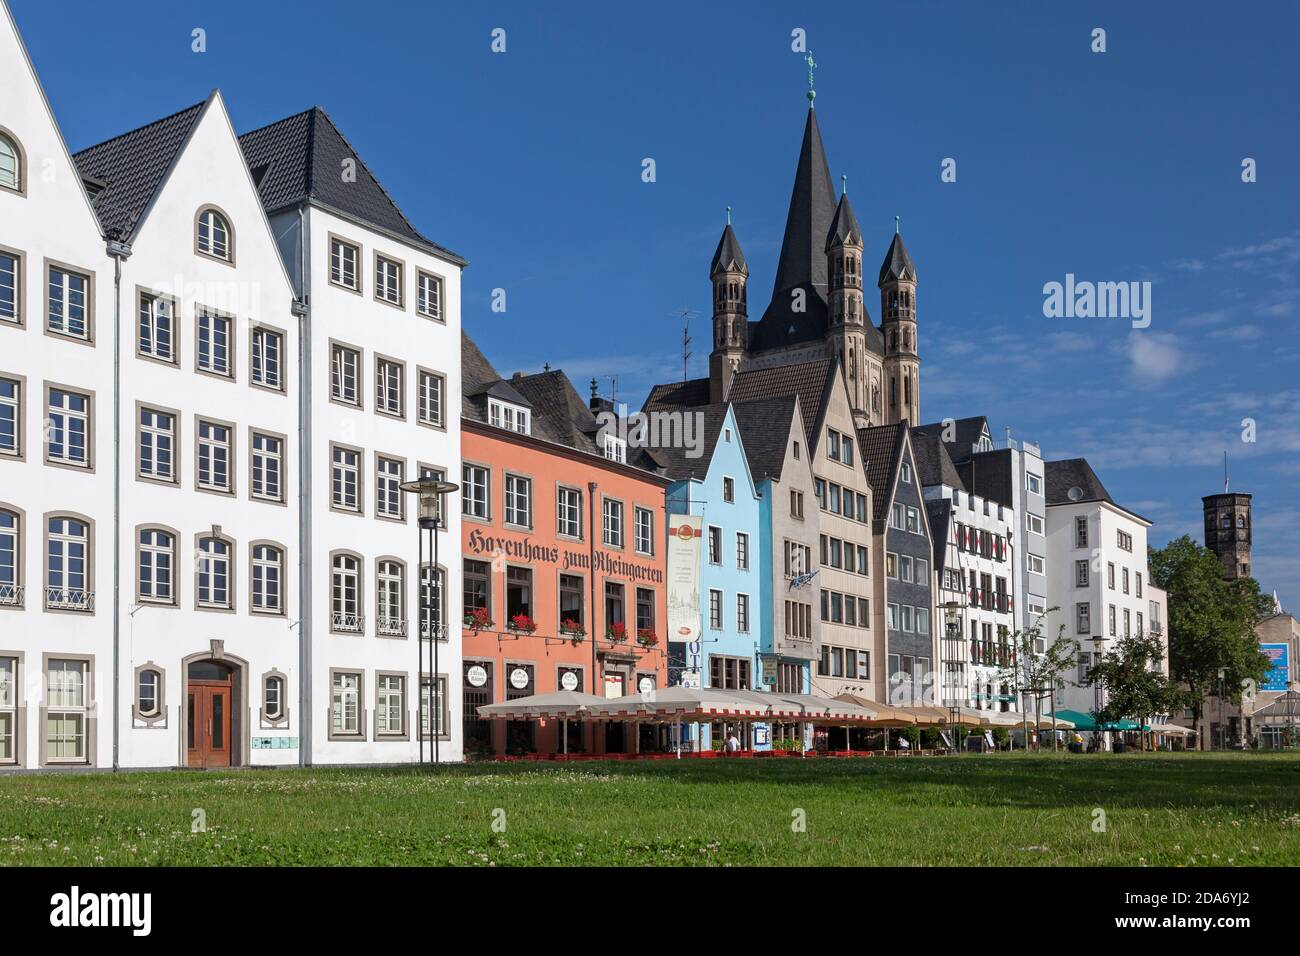 geography / travel, Germany, North Rhine-Westphalia, Cologne, capital St. Martin in the old town, Colo, Additional-Rights-Clearance-Info-Not-Available Stock Photo